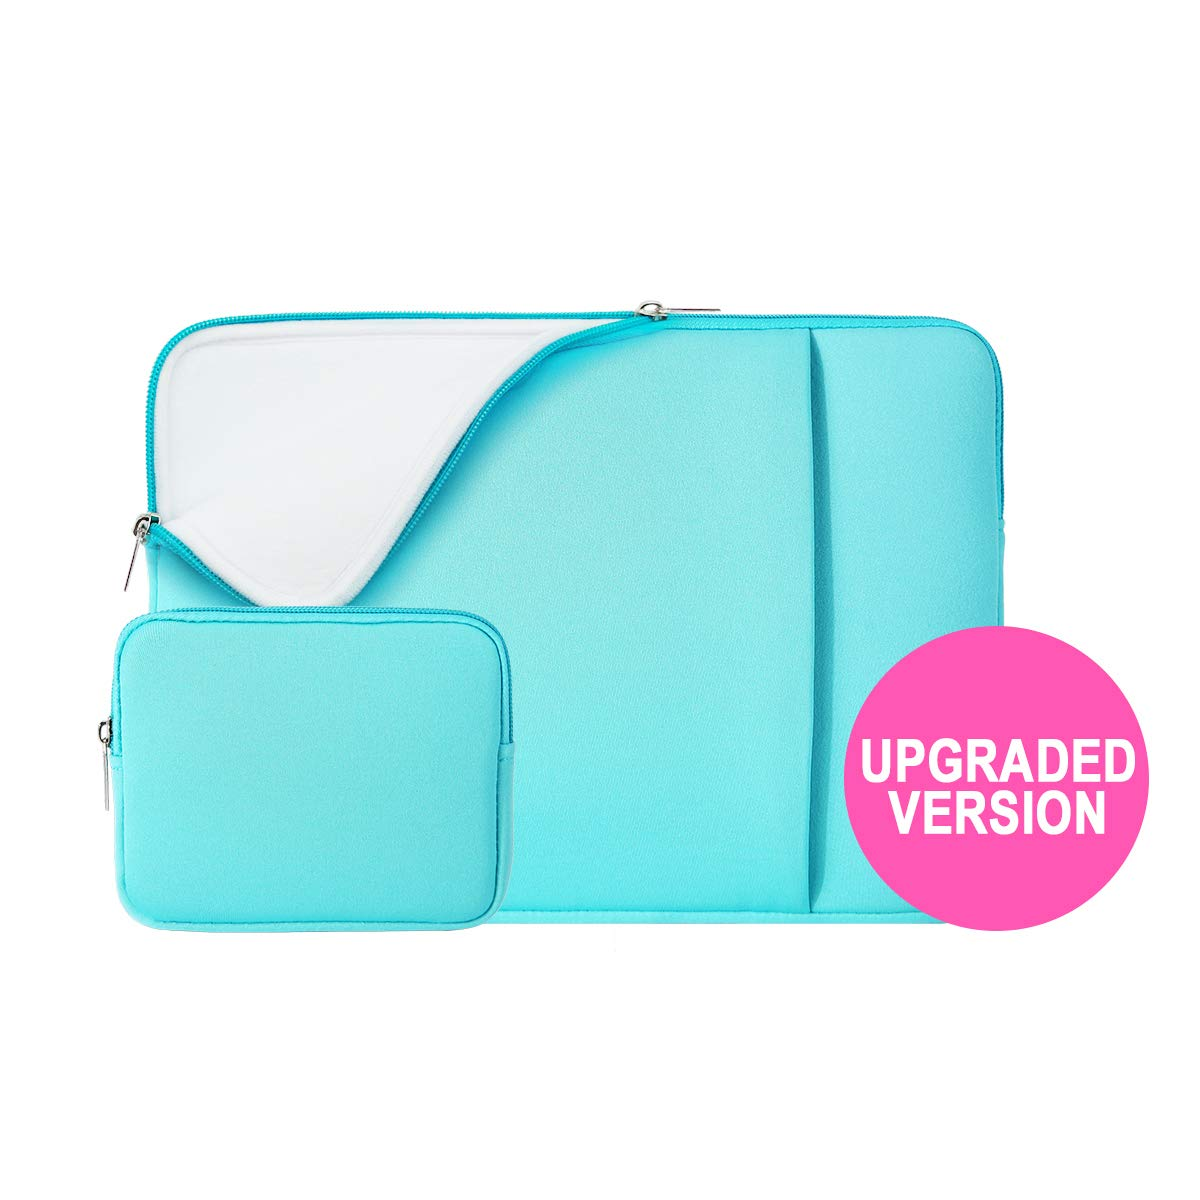 """RAINYEAR 13 Inch Laptop Sleeve Soft Lining Case Cover Bag with Pocket & Accessories Pouch,Compatible with 13.3 MacBook Pro Air/Retina/Touch Bar for 13"""" Notebook Chromebook(Blue,Upgraded Version)"""